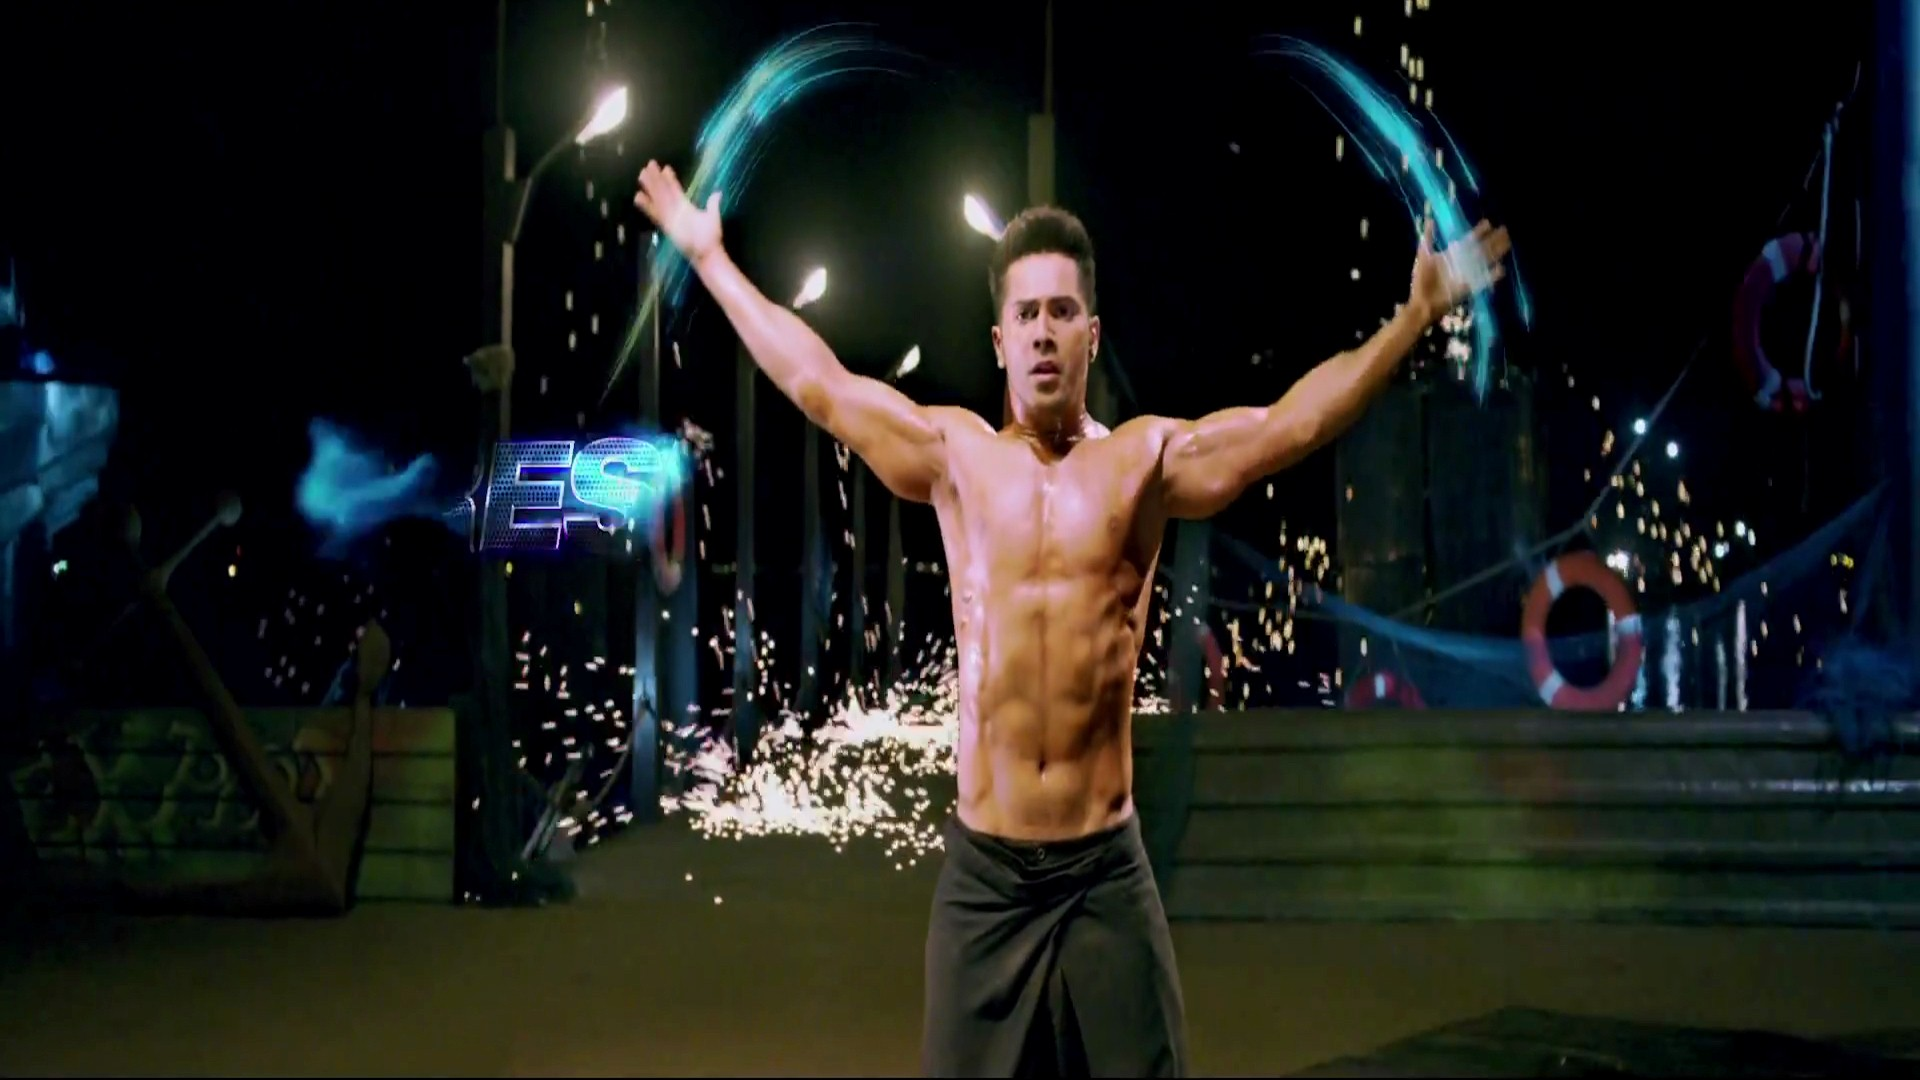 Pack Body Abs Of Varun Dhawan Actor In Abcd Film Hd Photo Pic